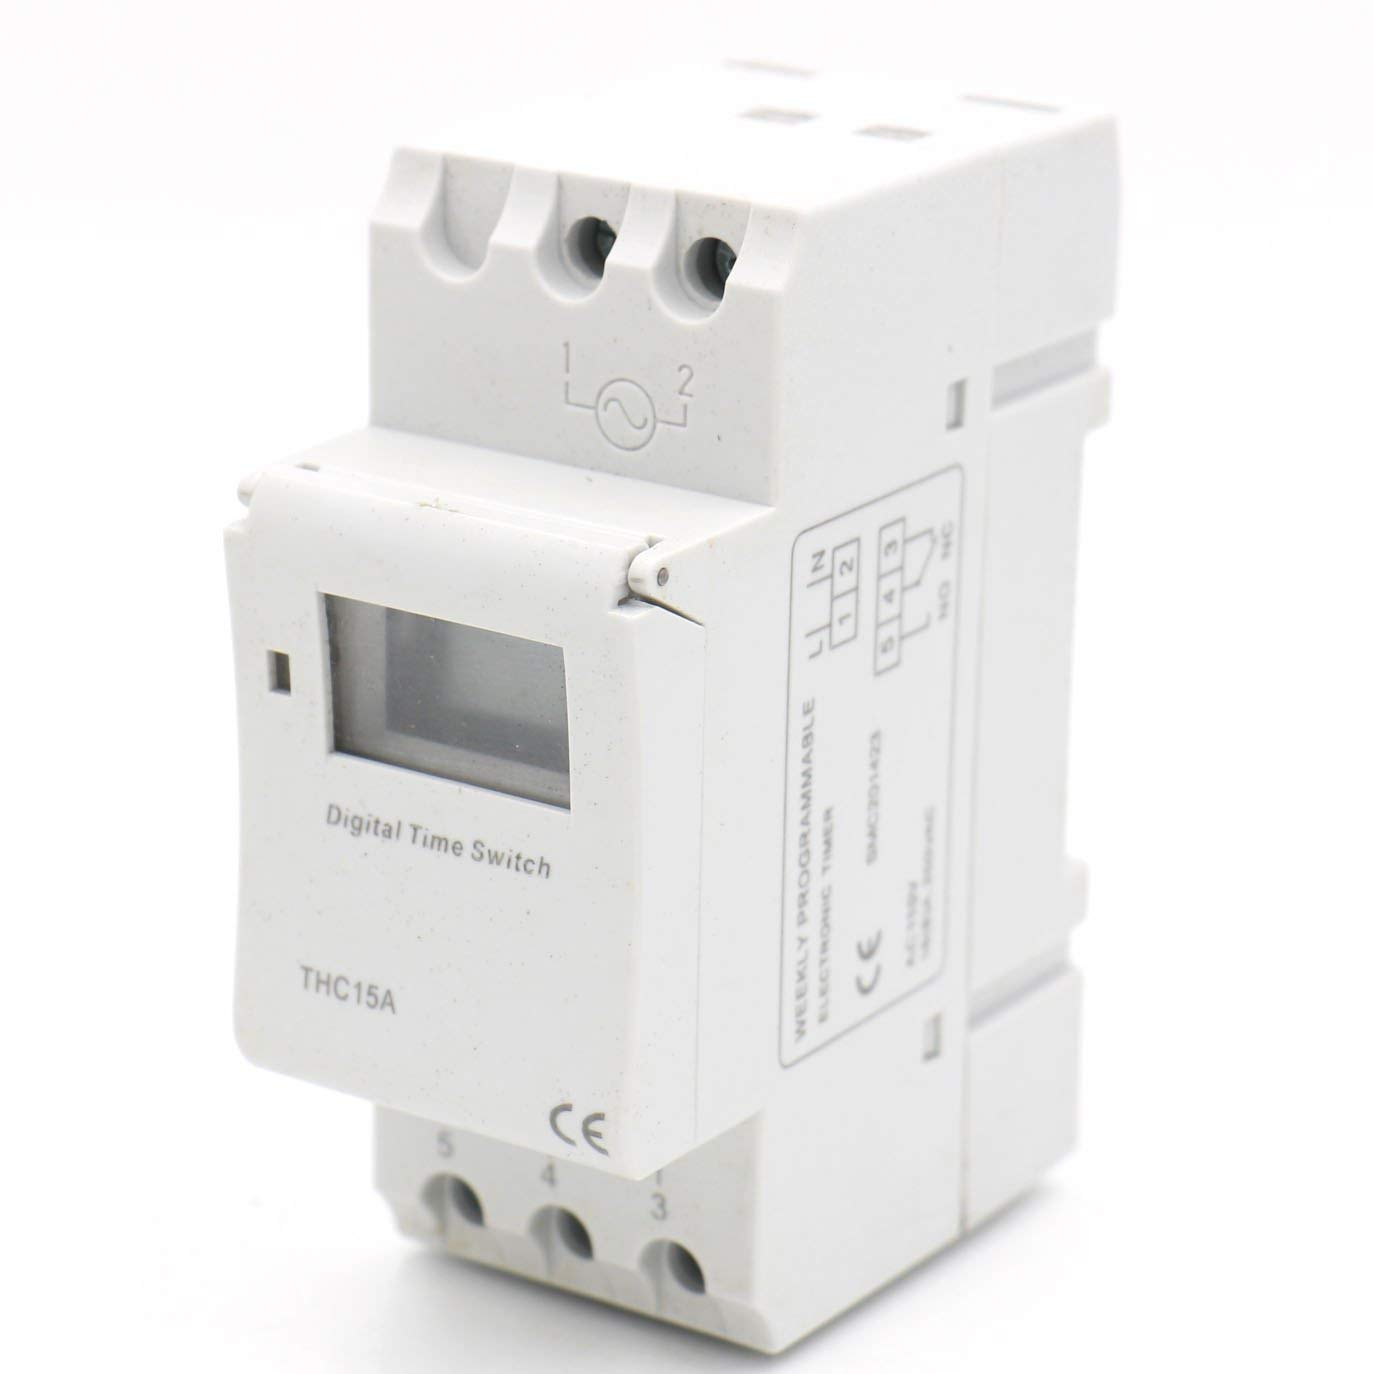 Thc-15 16a 110v  220v Relay Digital Lcd Power Programmable Timer Time Switch